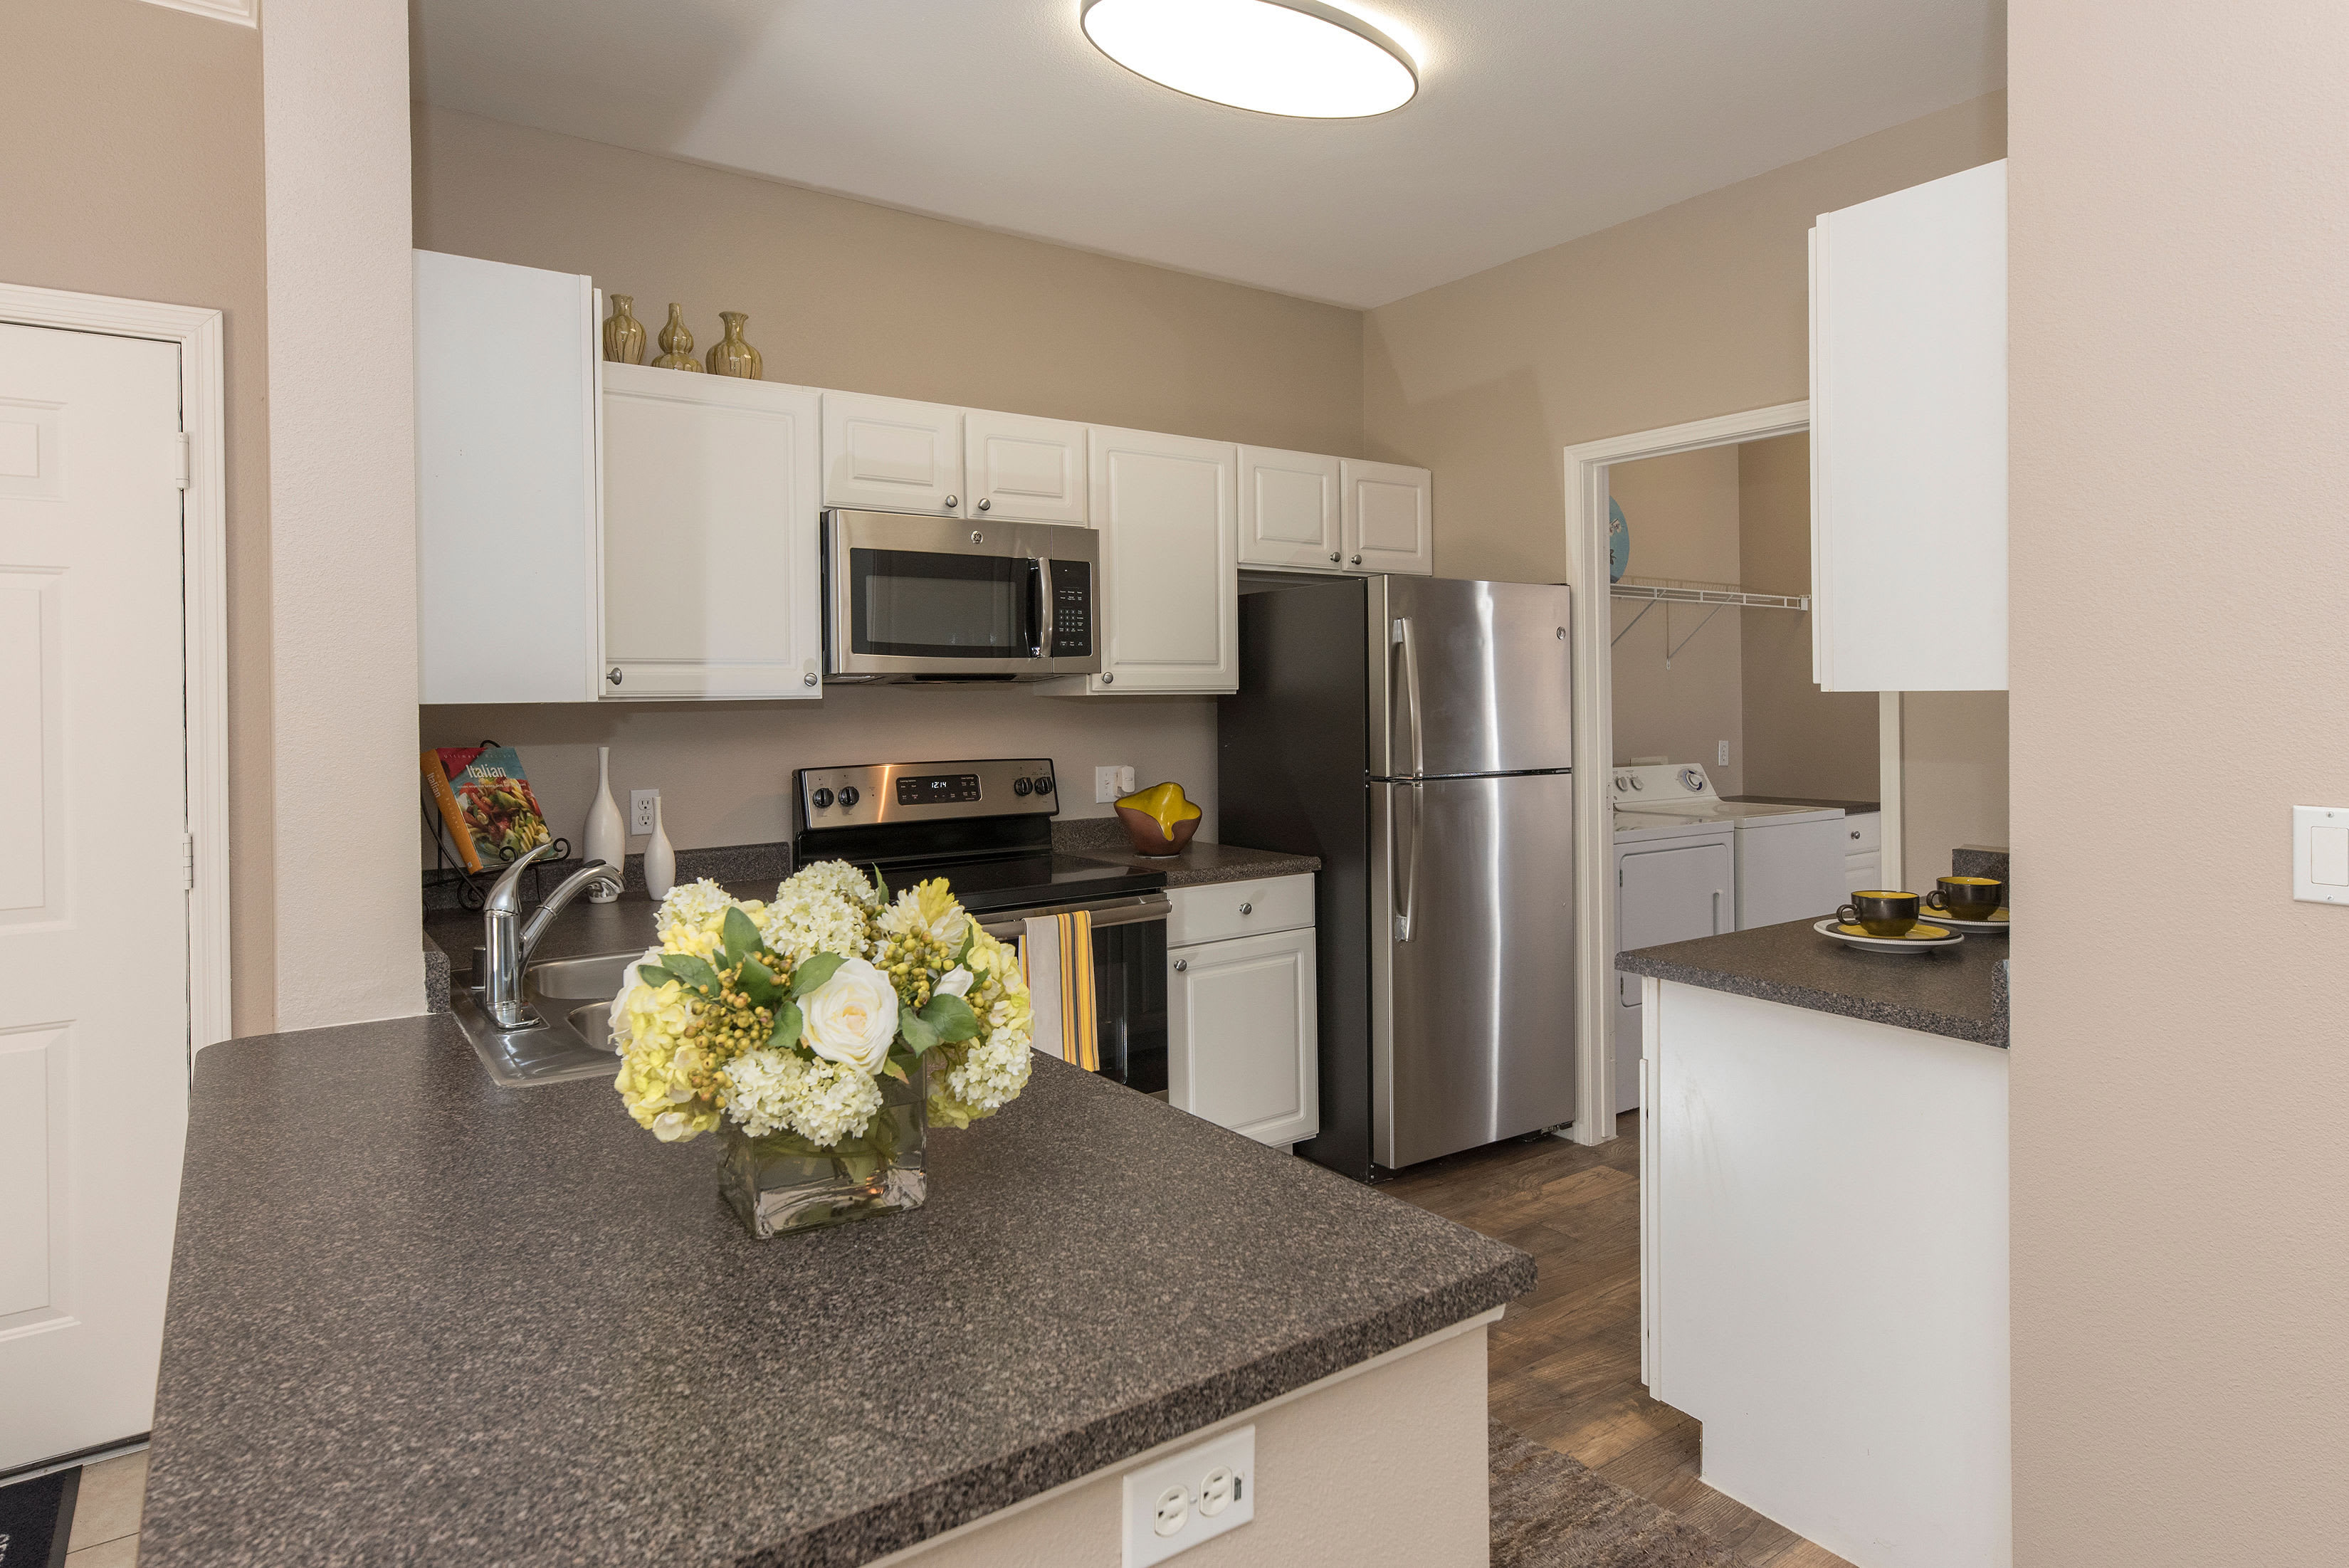 View our floor plans at Cross Pointe Apartment Homes on our website